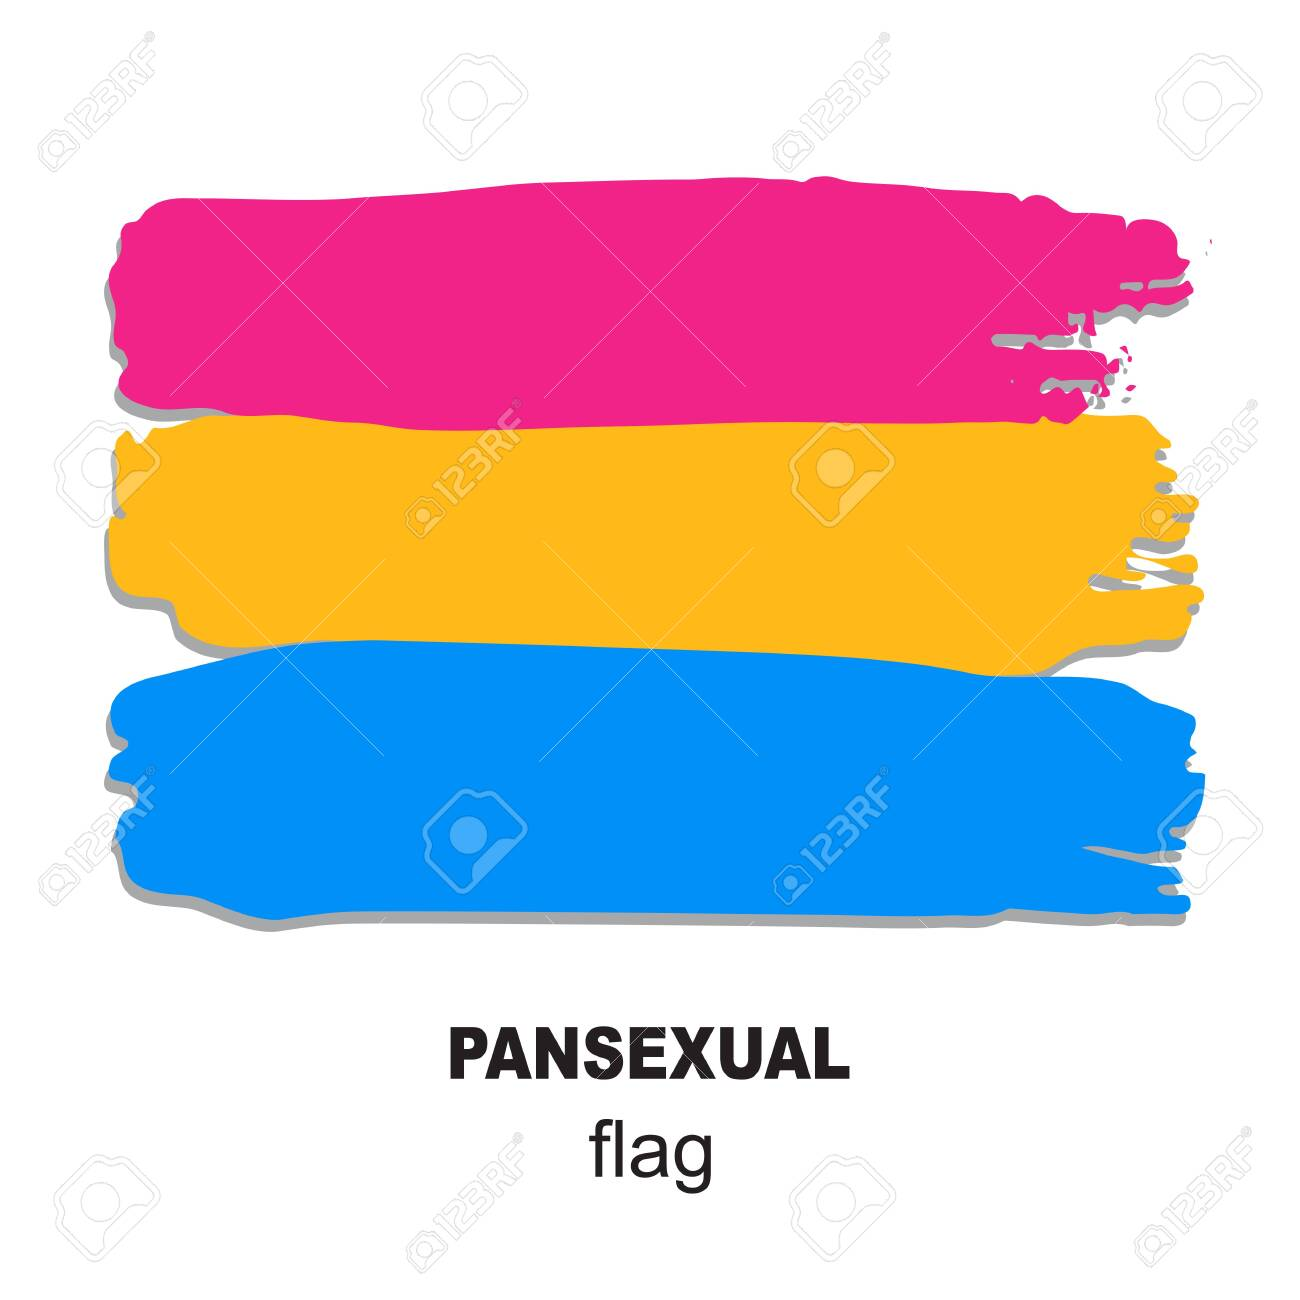 Pansexual Pride Flag Isolated On White Background Gay Pride Royalty Free Cliparts Vectors And Stock Illustration Image 125962702